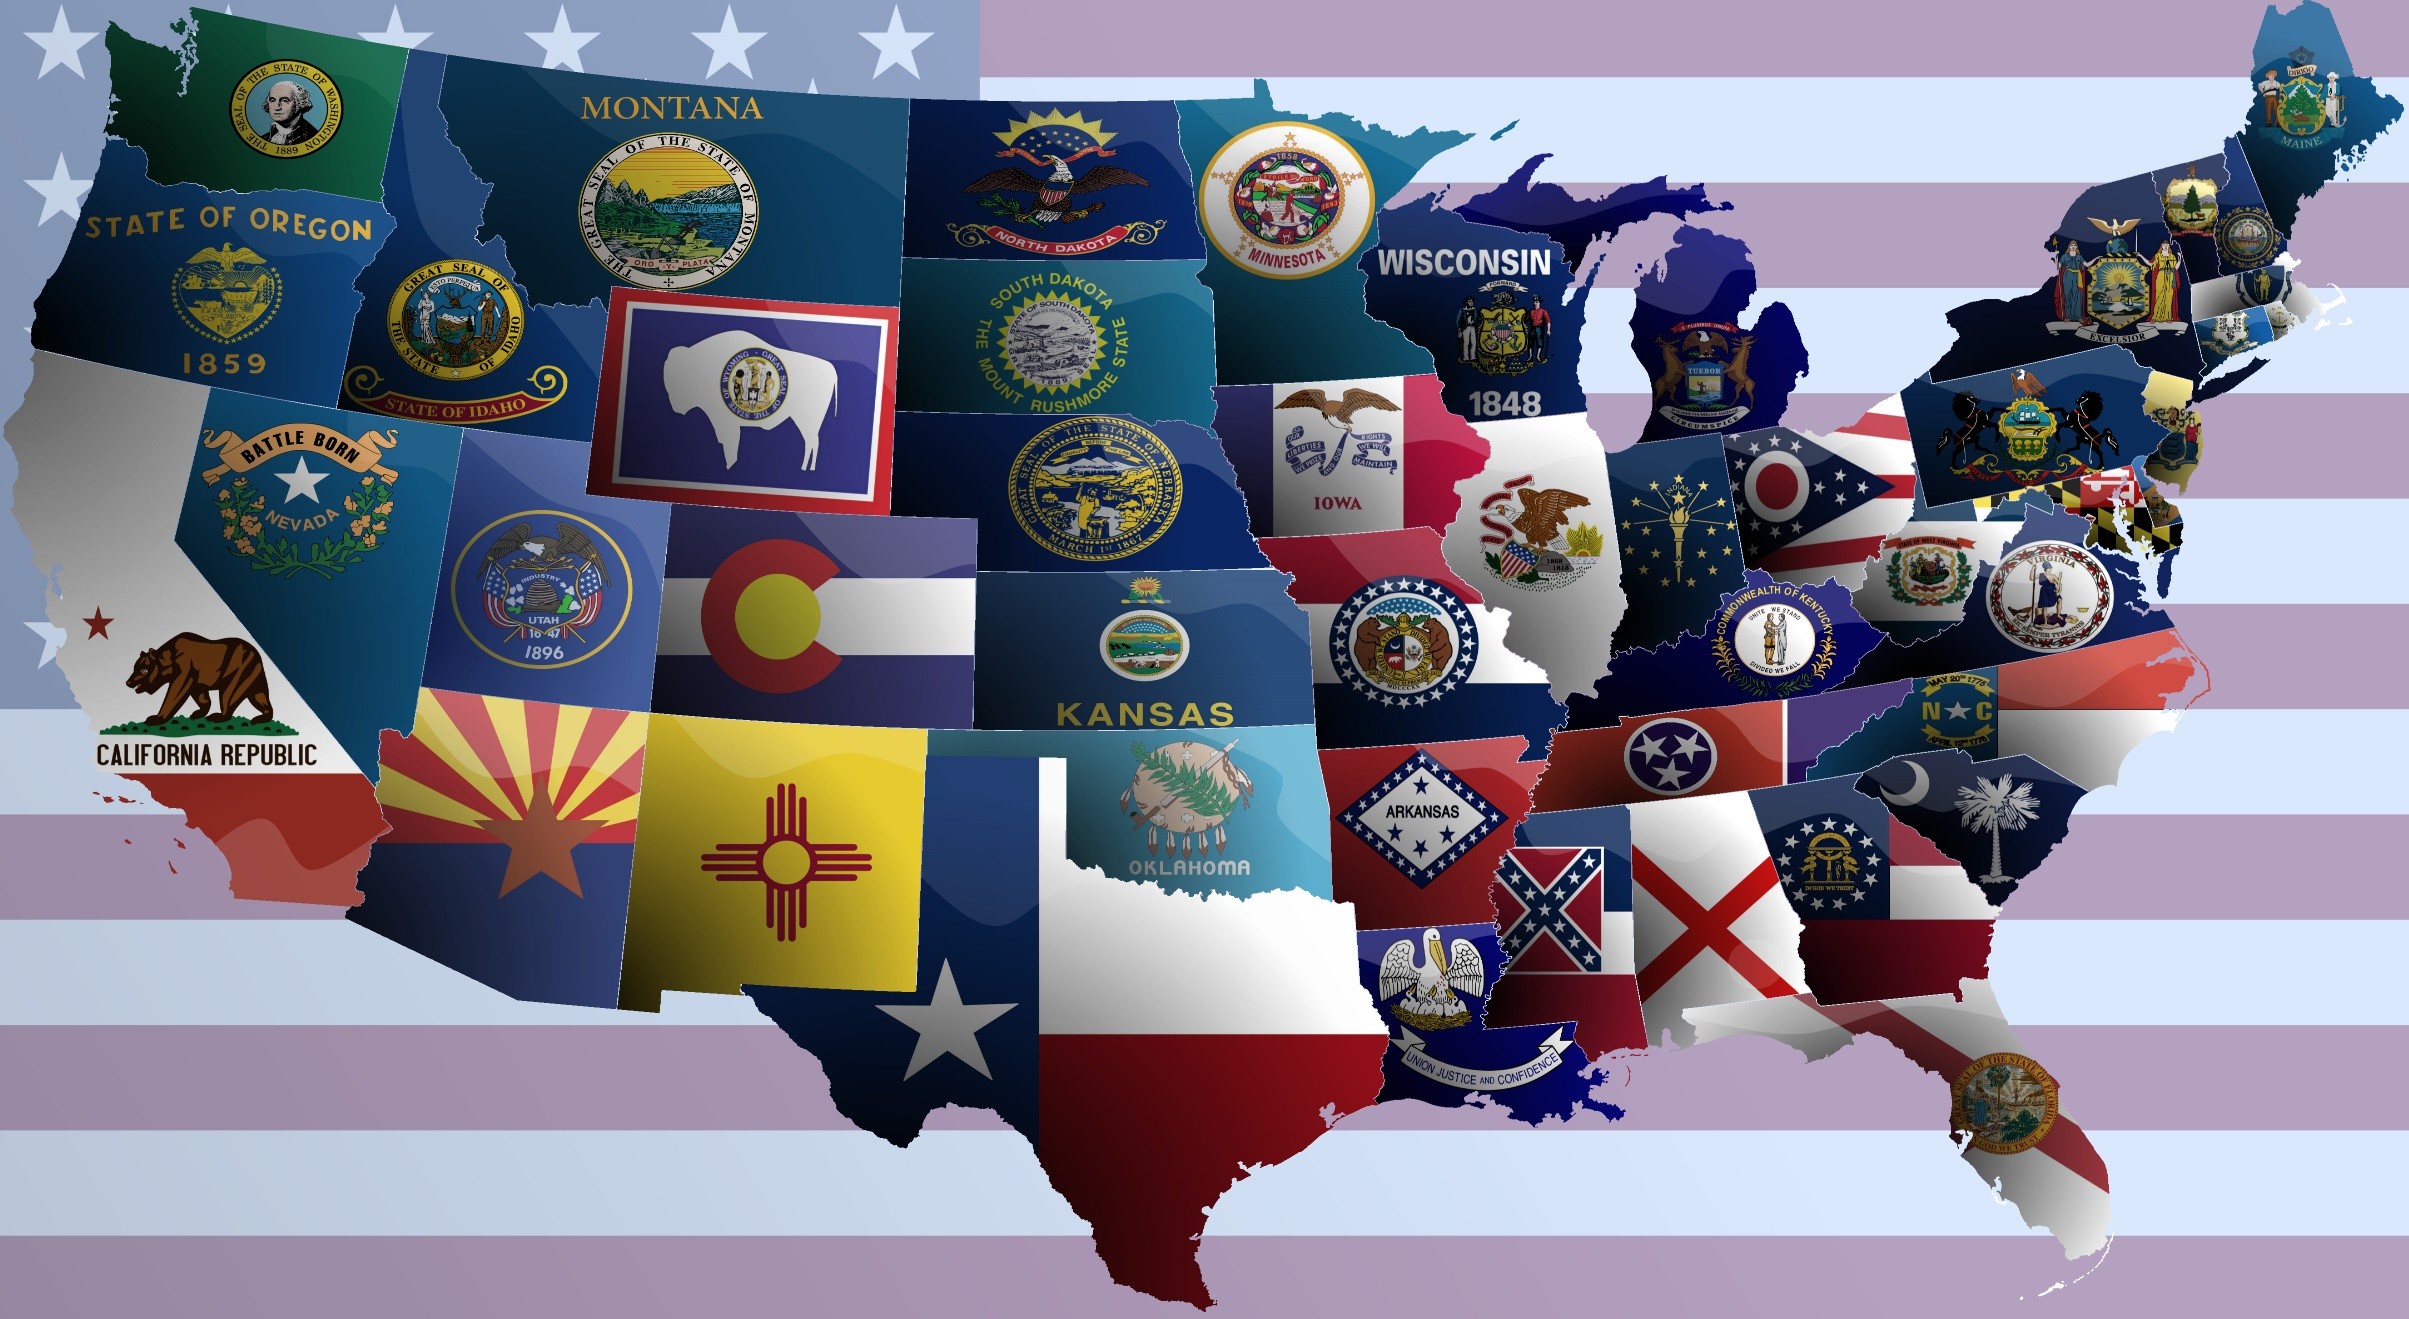 United States Of America Flag Map By Jaysimons On Deviantart - Us-map-with-state-flags